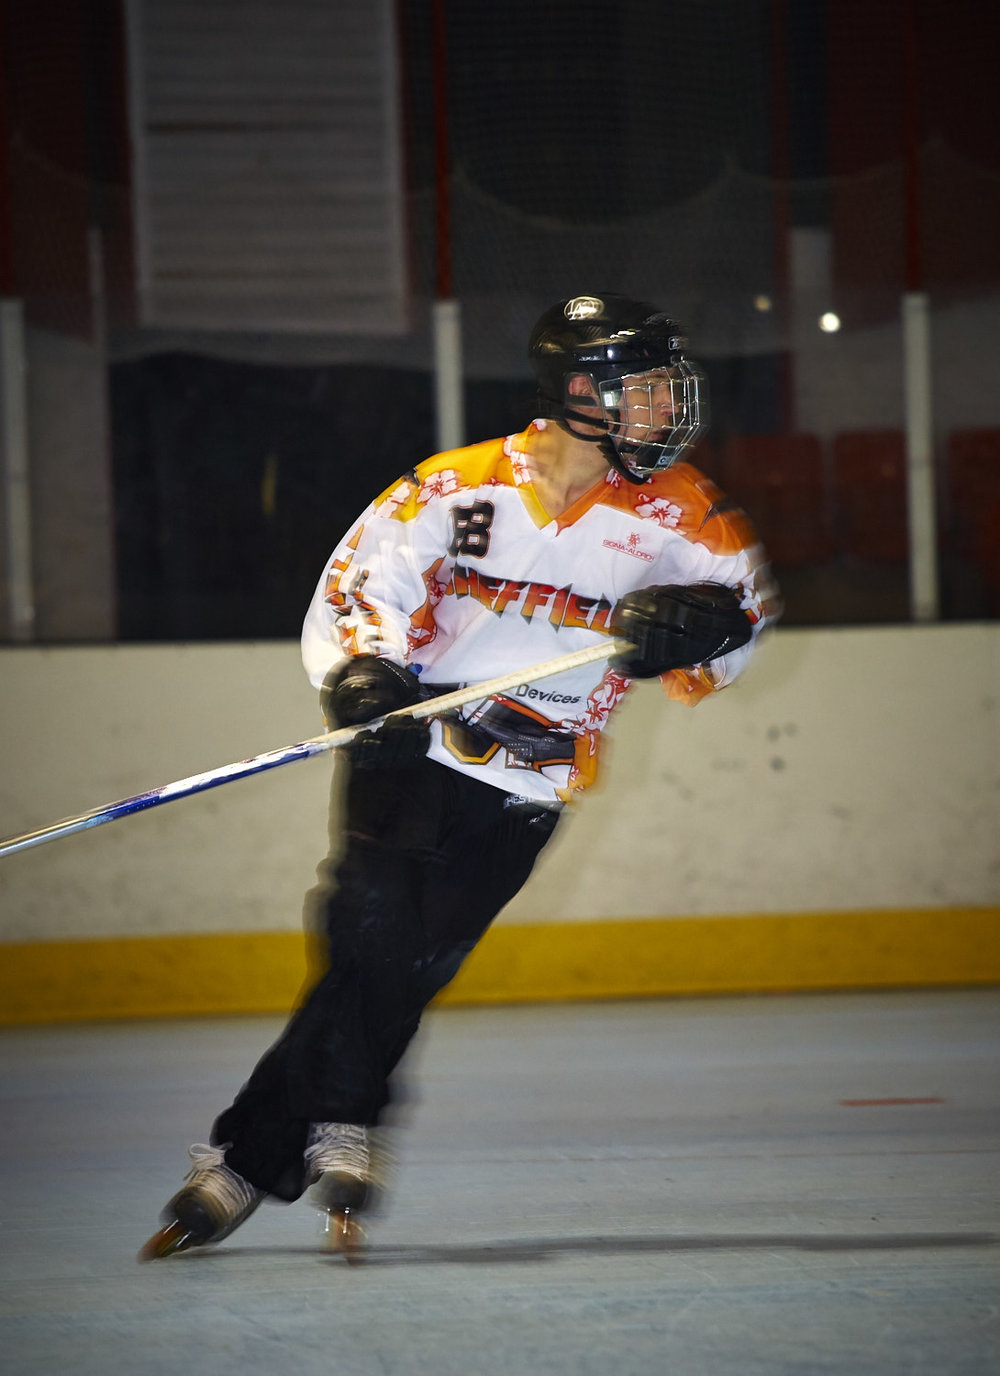 Sheffield Flames Roller Hockey